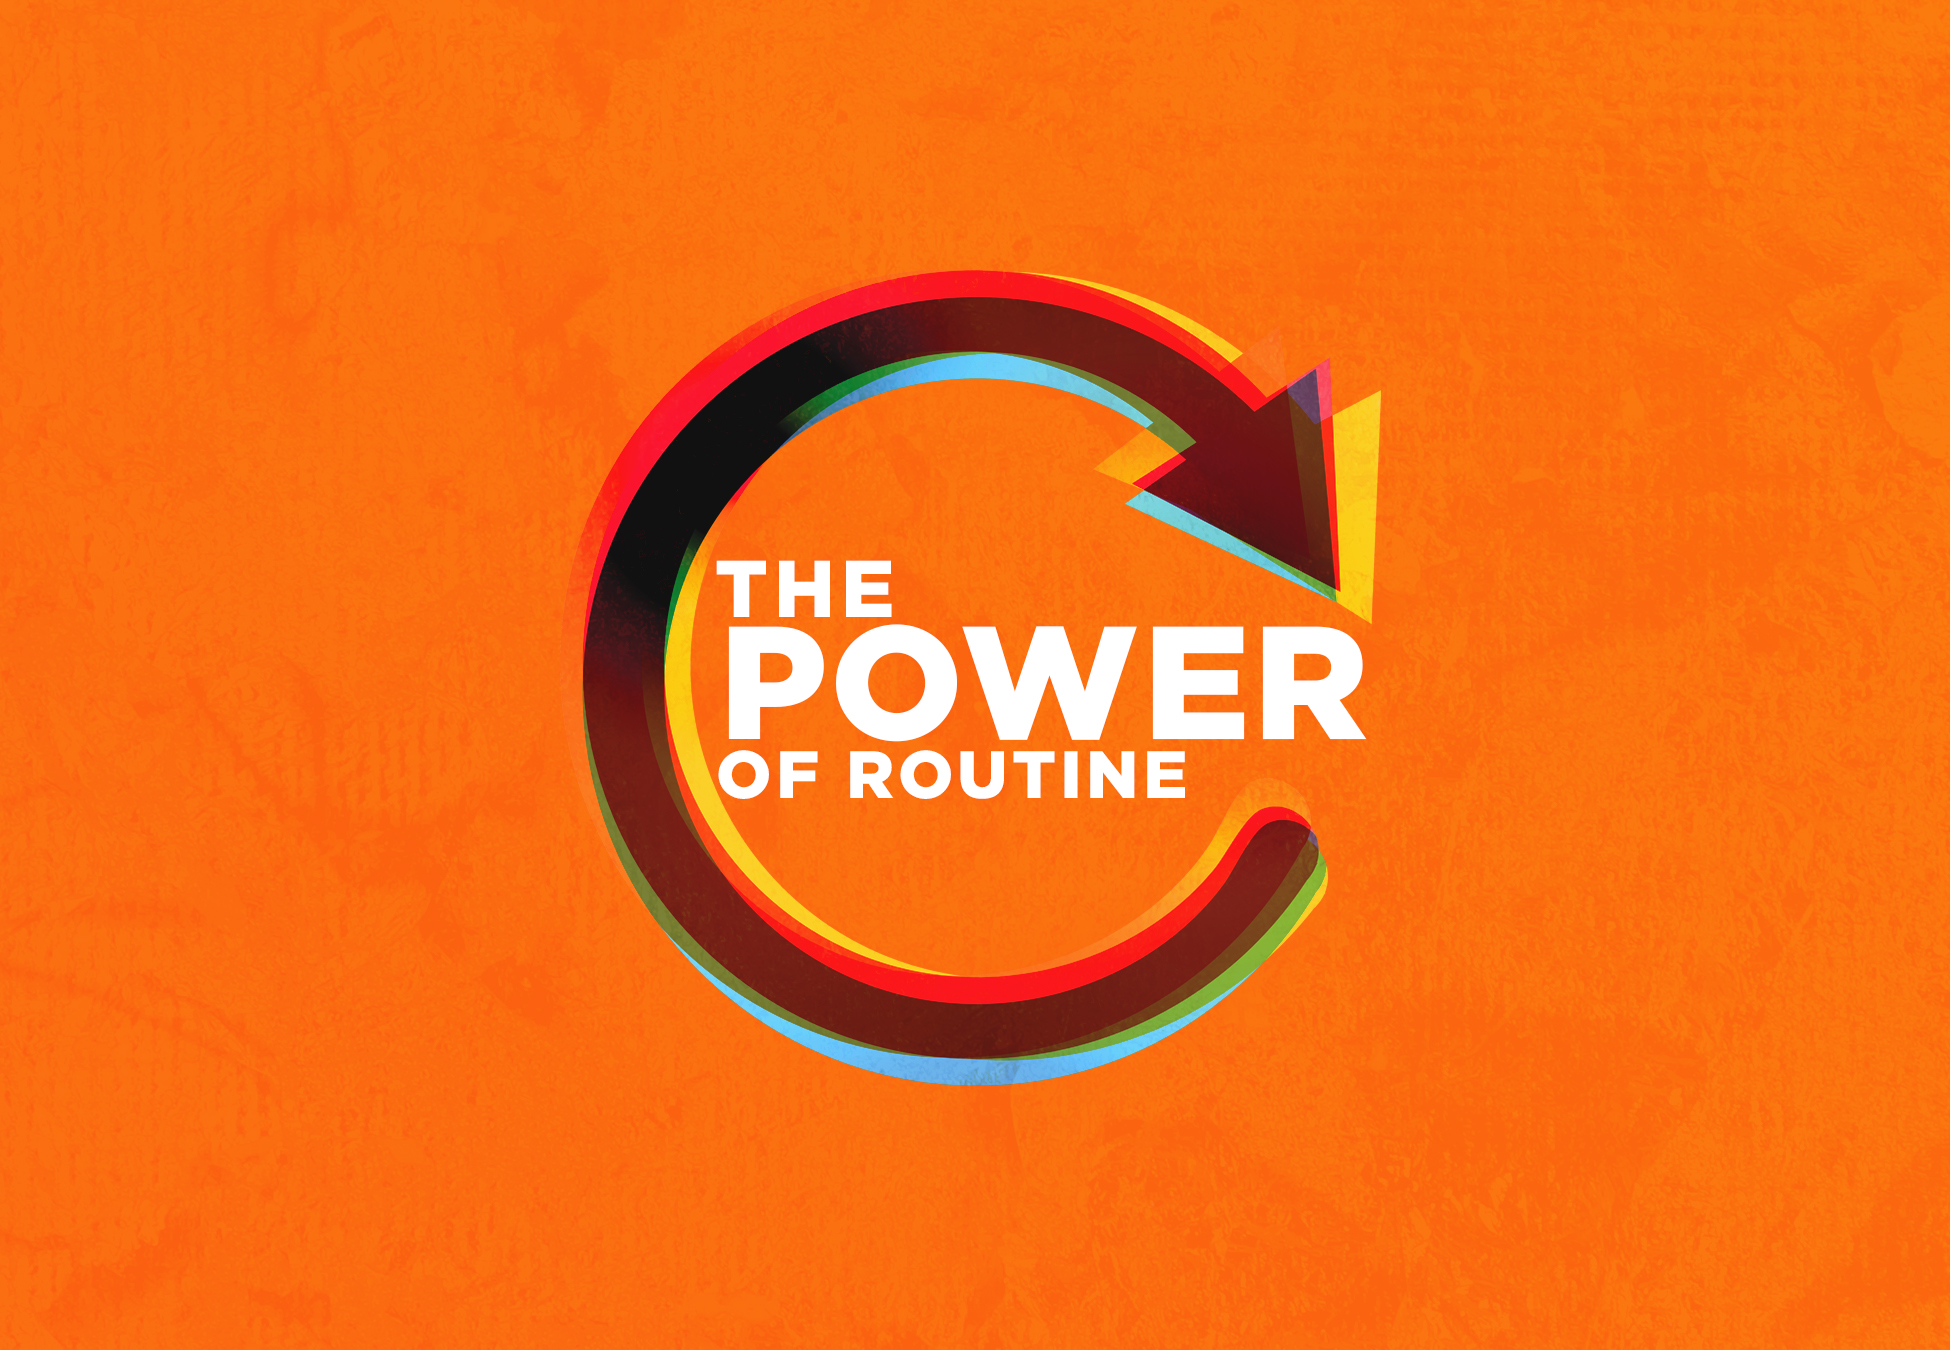 The-Power-Of-Routine_Postcard.jpg